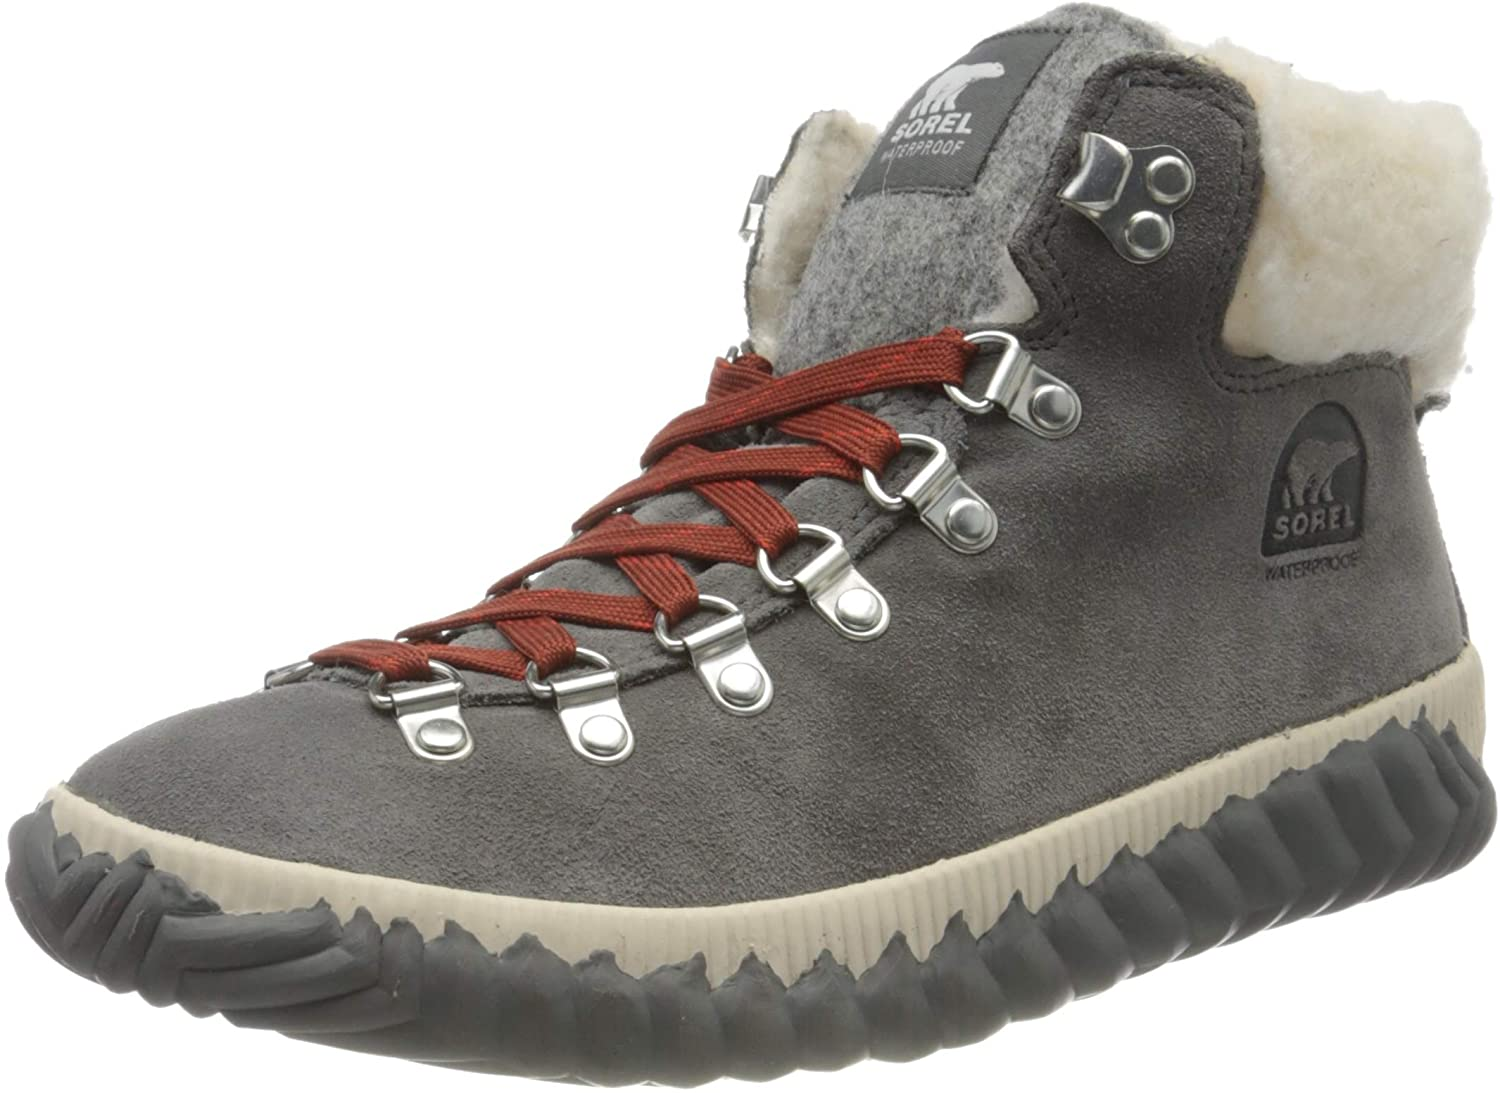 Sorel - Womens Out 'N About Plus Conquest Waterproof Suede Boot, Quarry, 7 M US